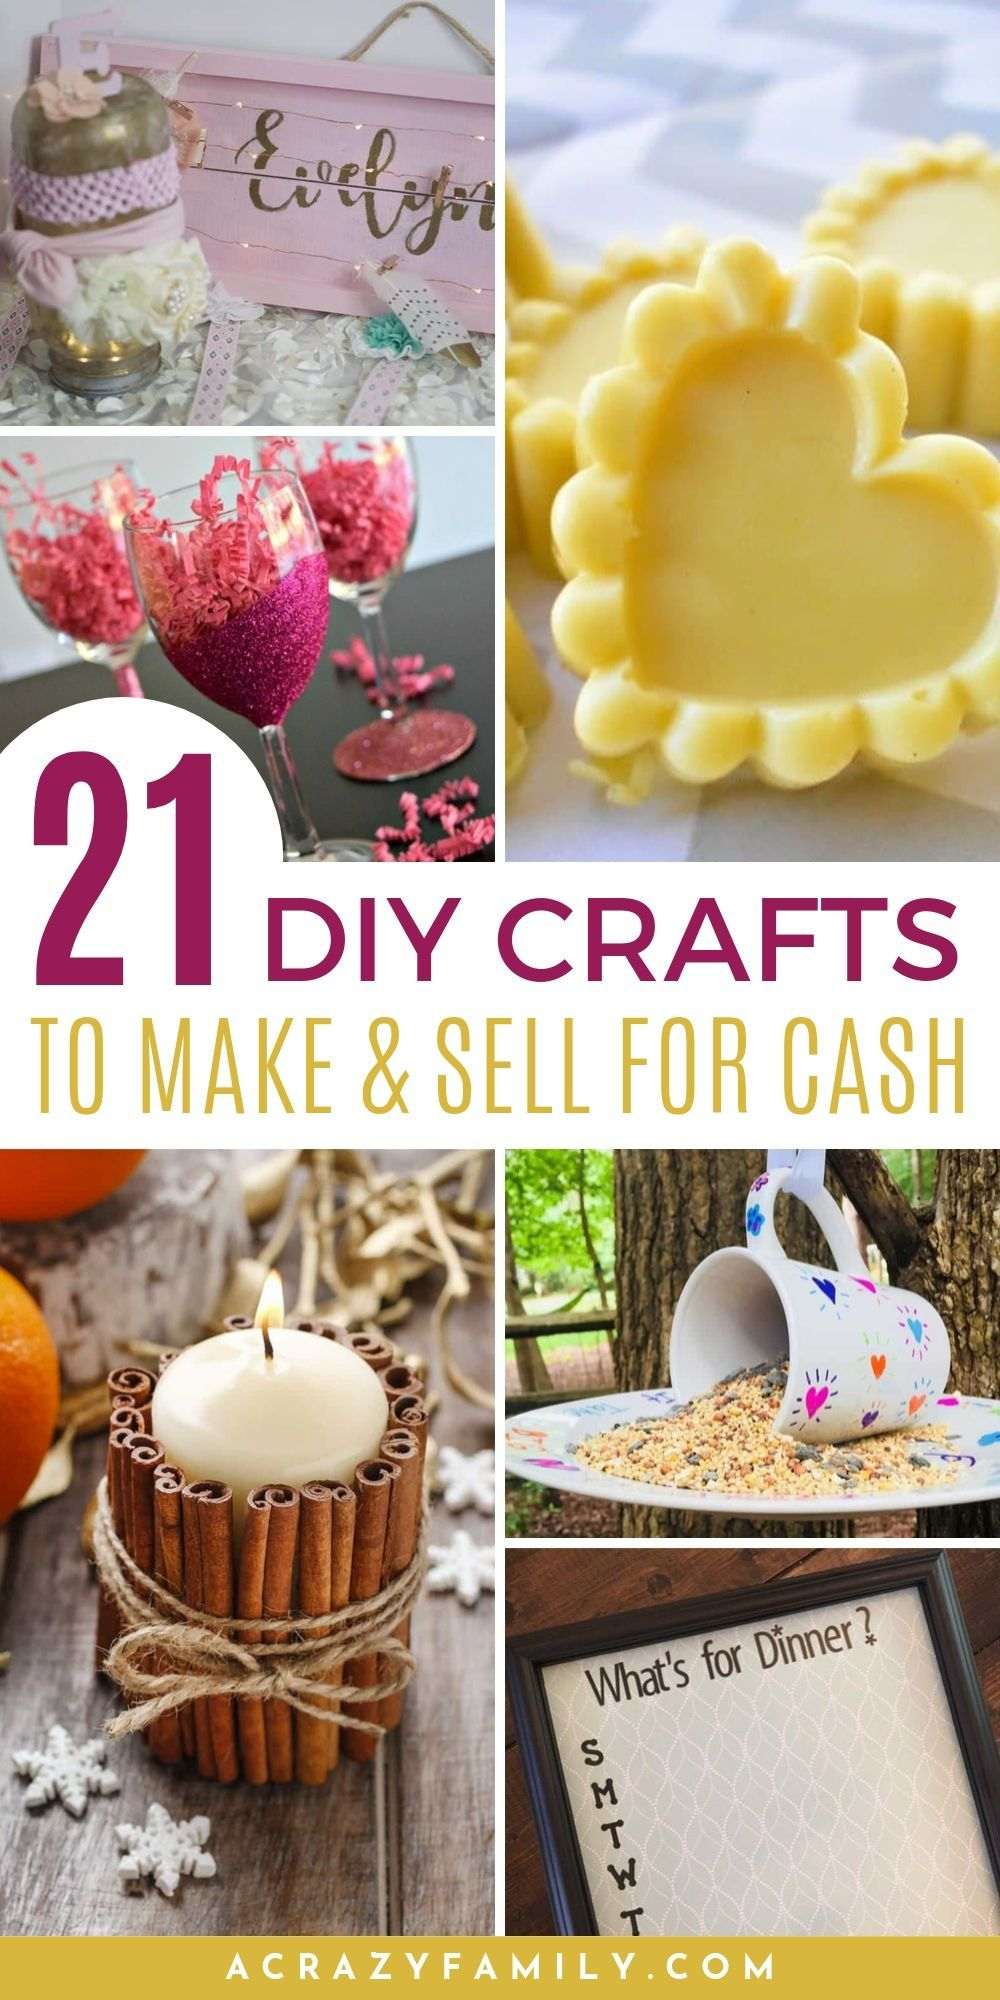 37+ Fun crafts to make and sell ideas